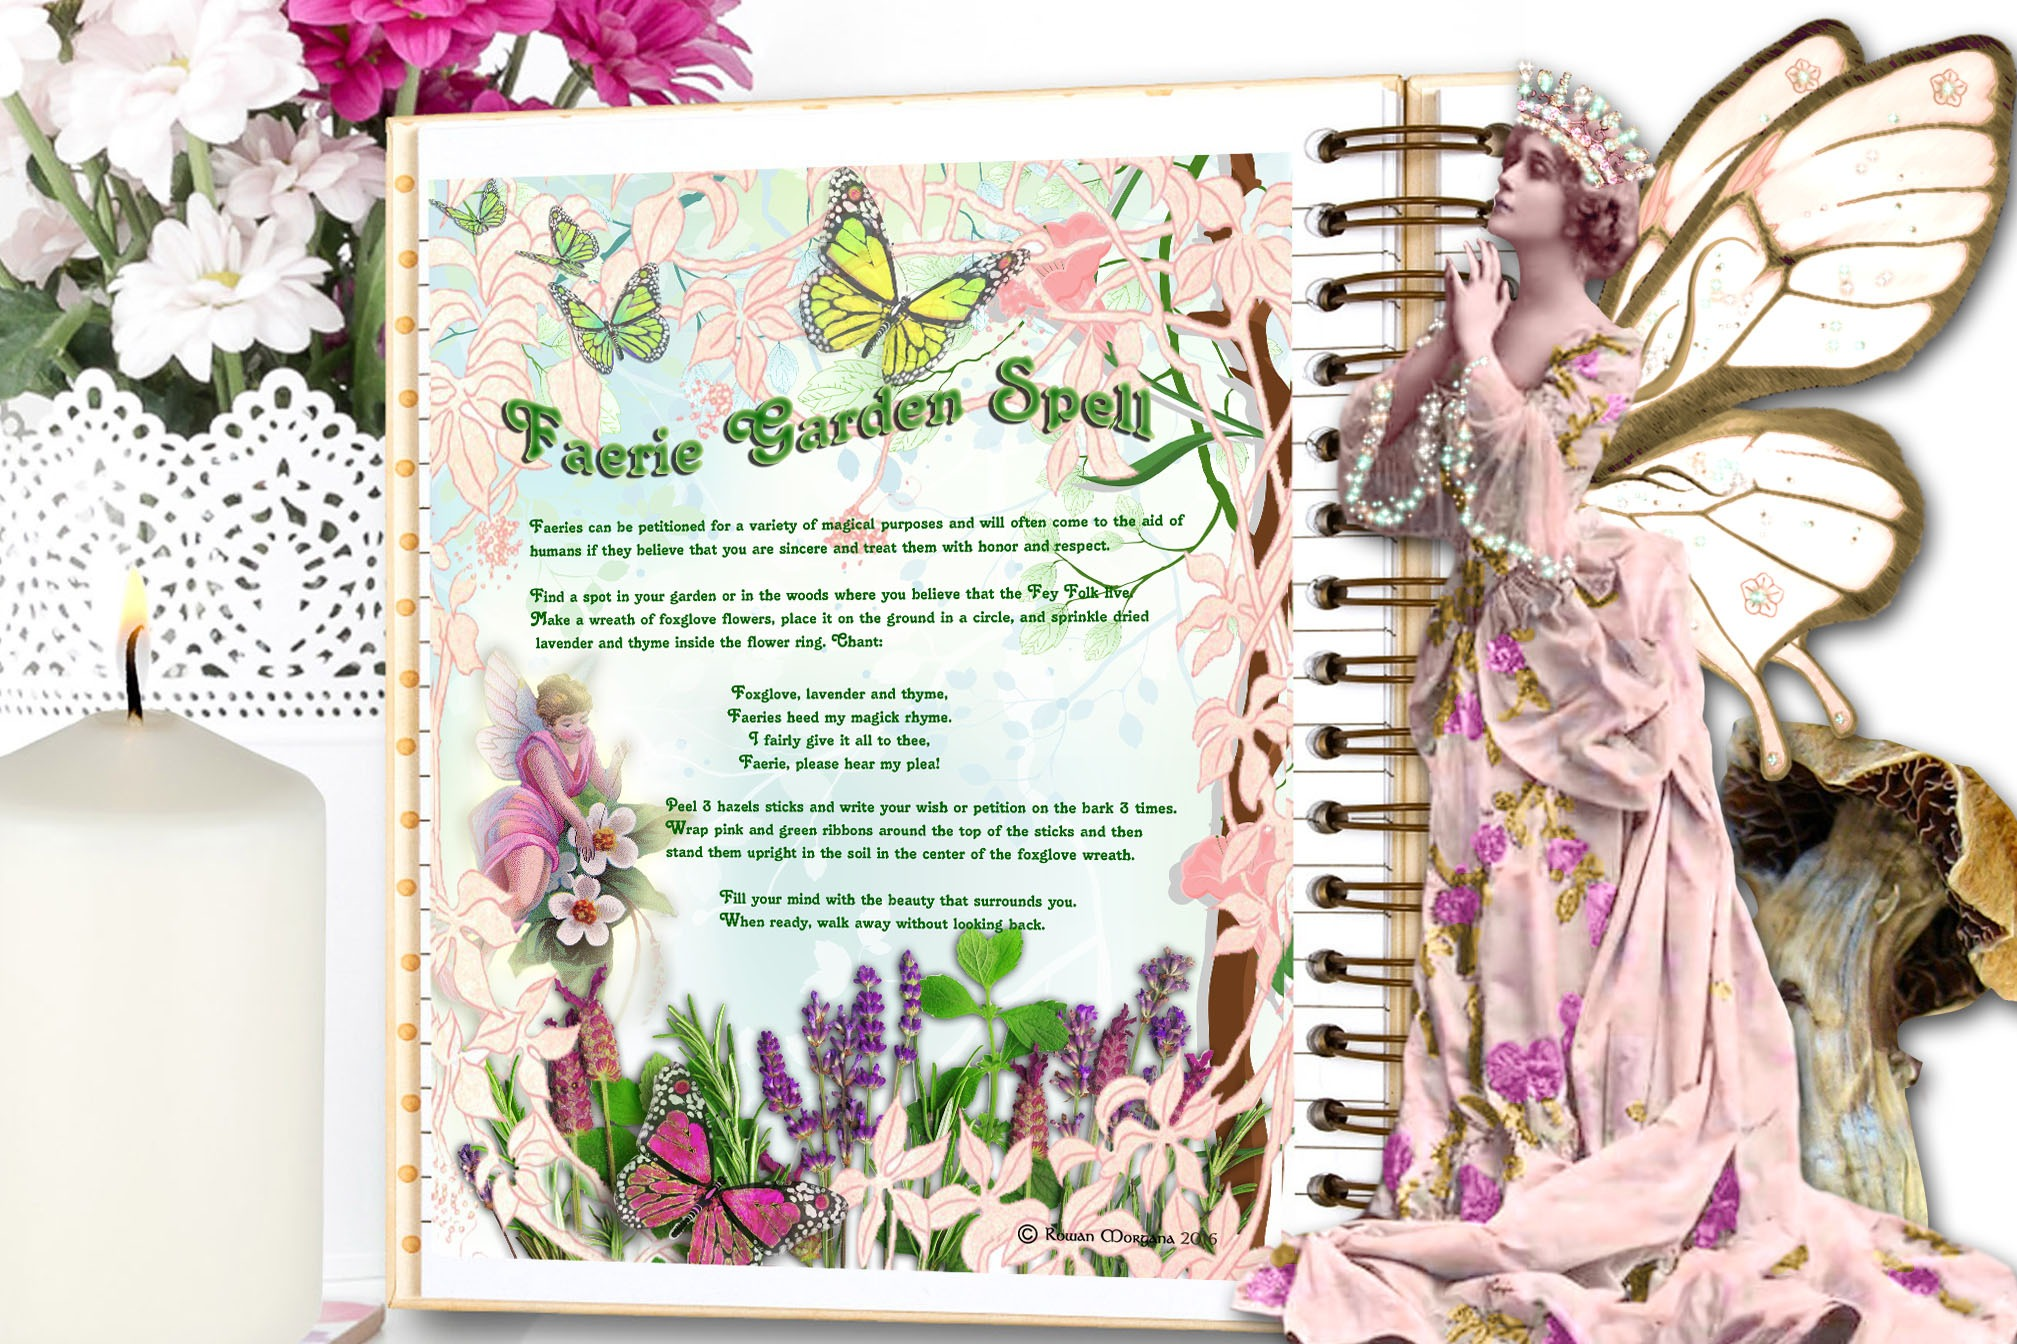 FAERIE GARDEN SPELL Realm of the Fey Lore